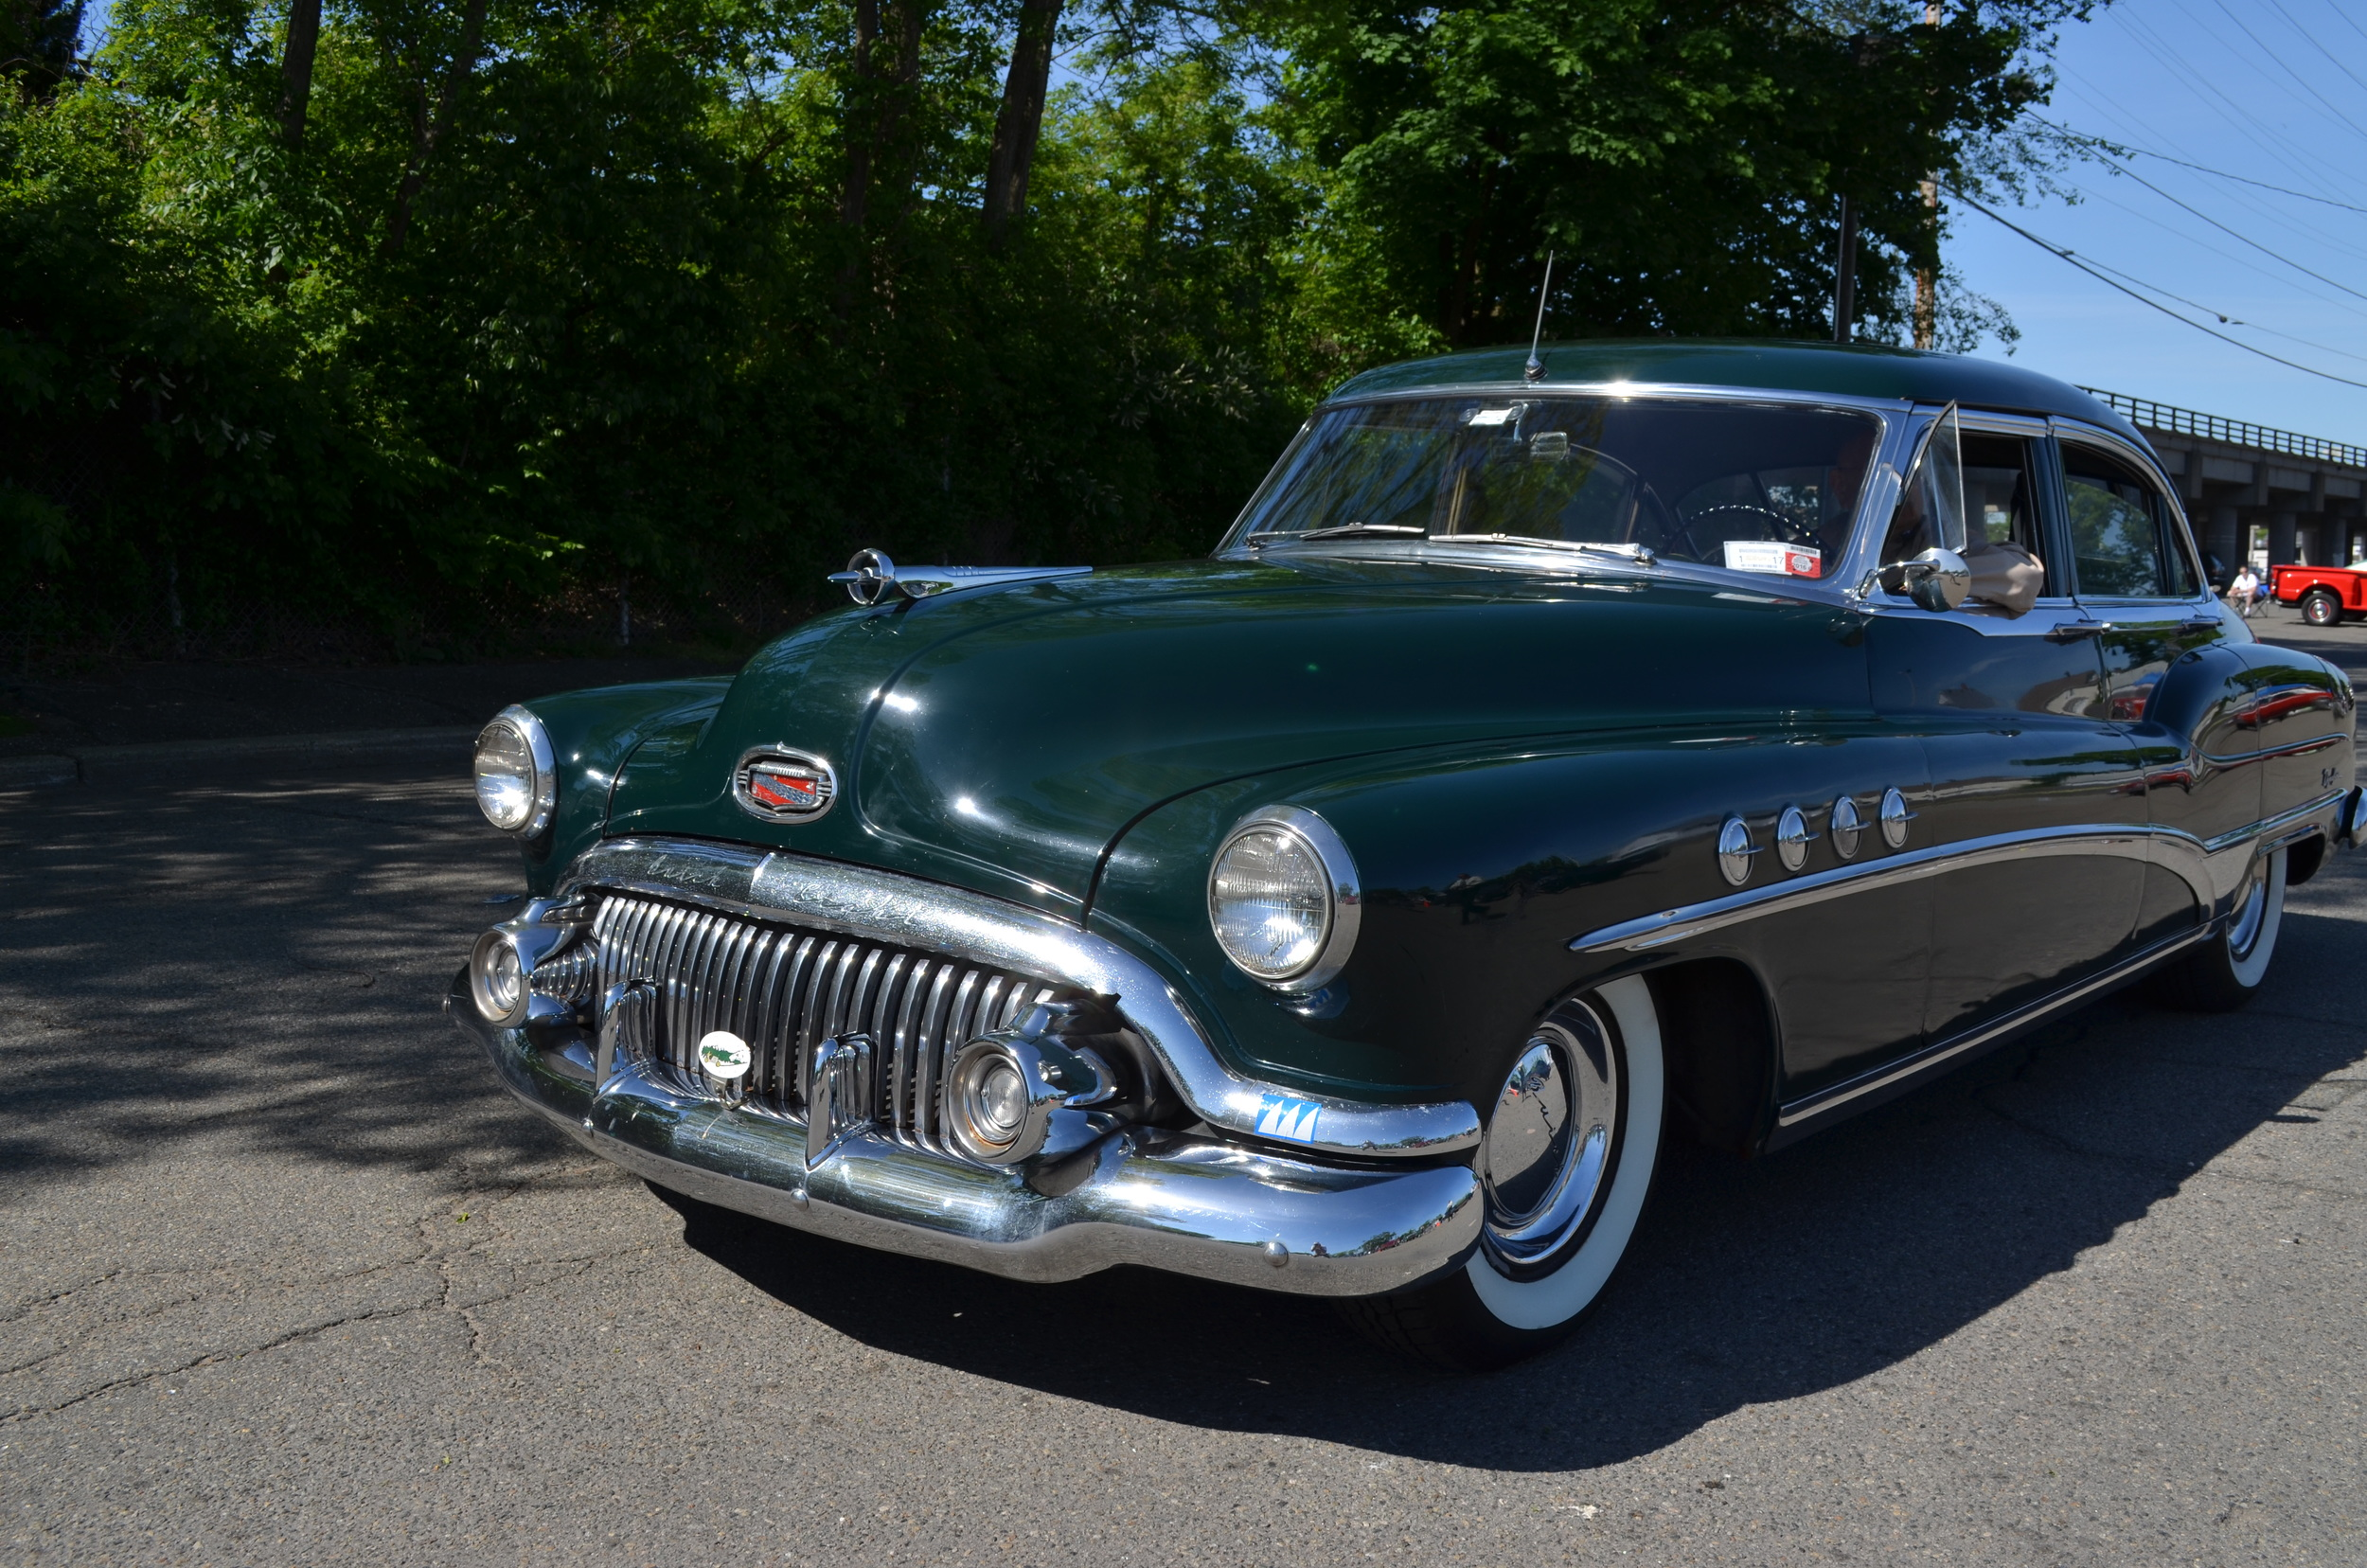 Allan Warren: 1951 Roadmaster Riviera Sedan